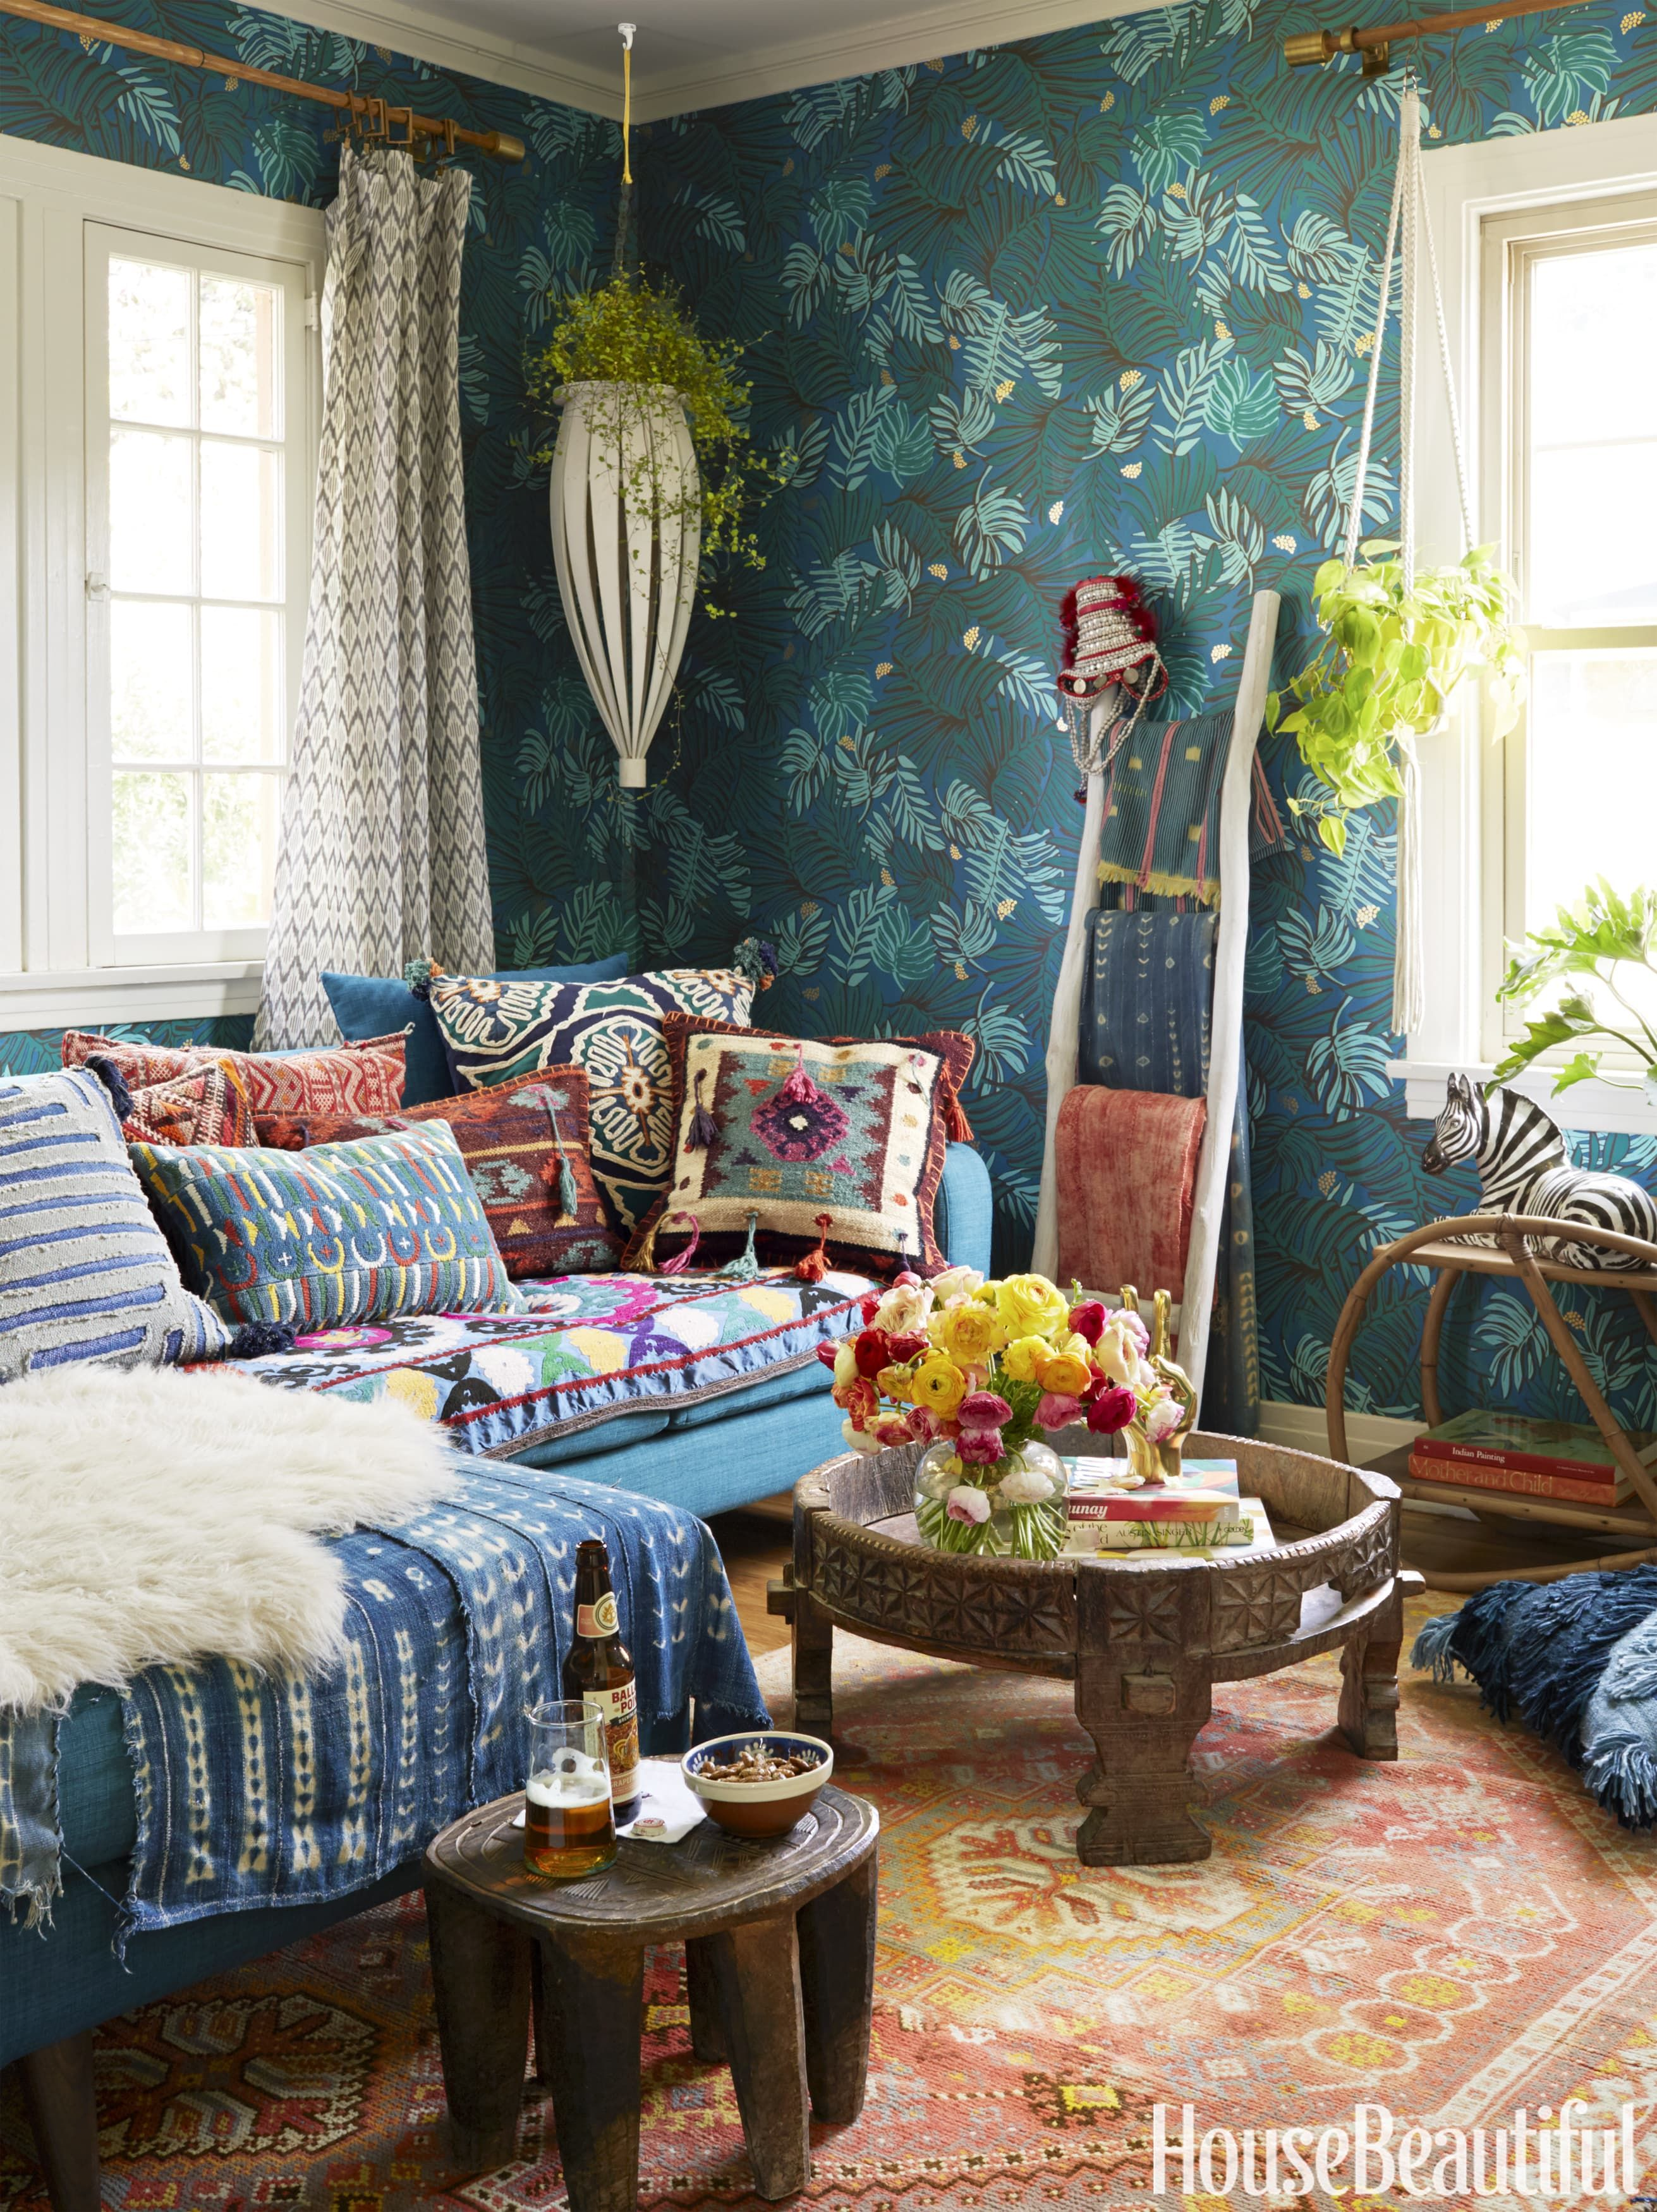 look possibly is garden ace ideal outdoor idea gypsy easygoing mix space decent pin decor attempt diverse without living giving a way and bohemian room home by that nook making the chic boho or fun indoor of